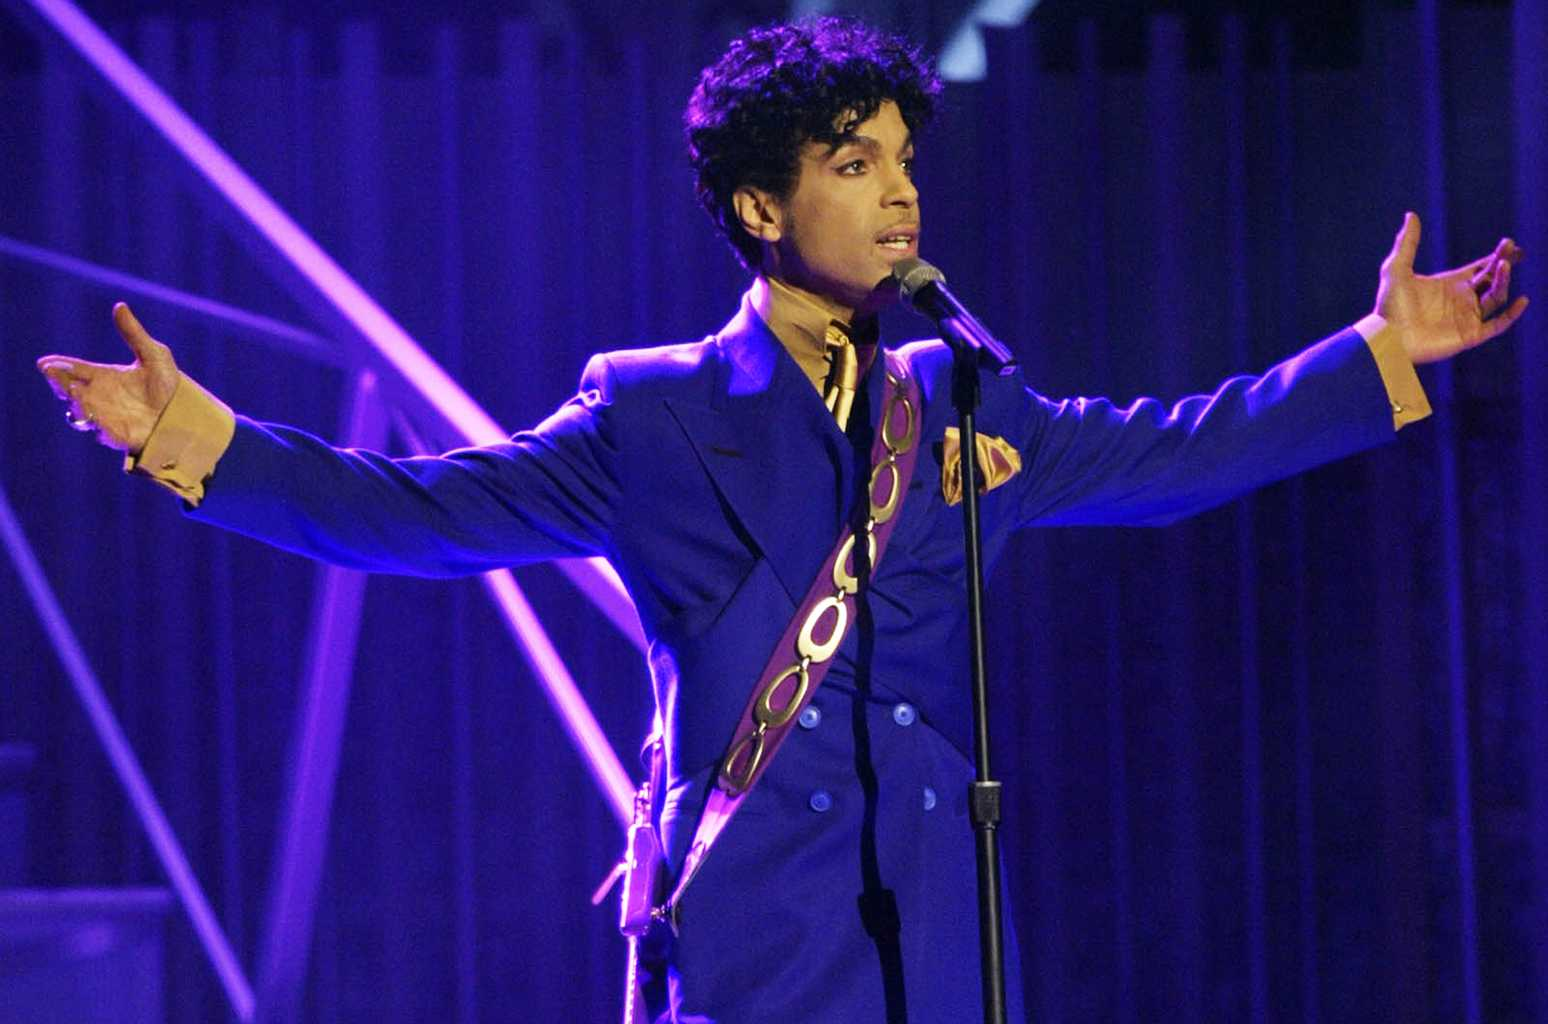 An Exposé Of Prince's Drug Addiction | Prince